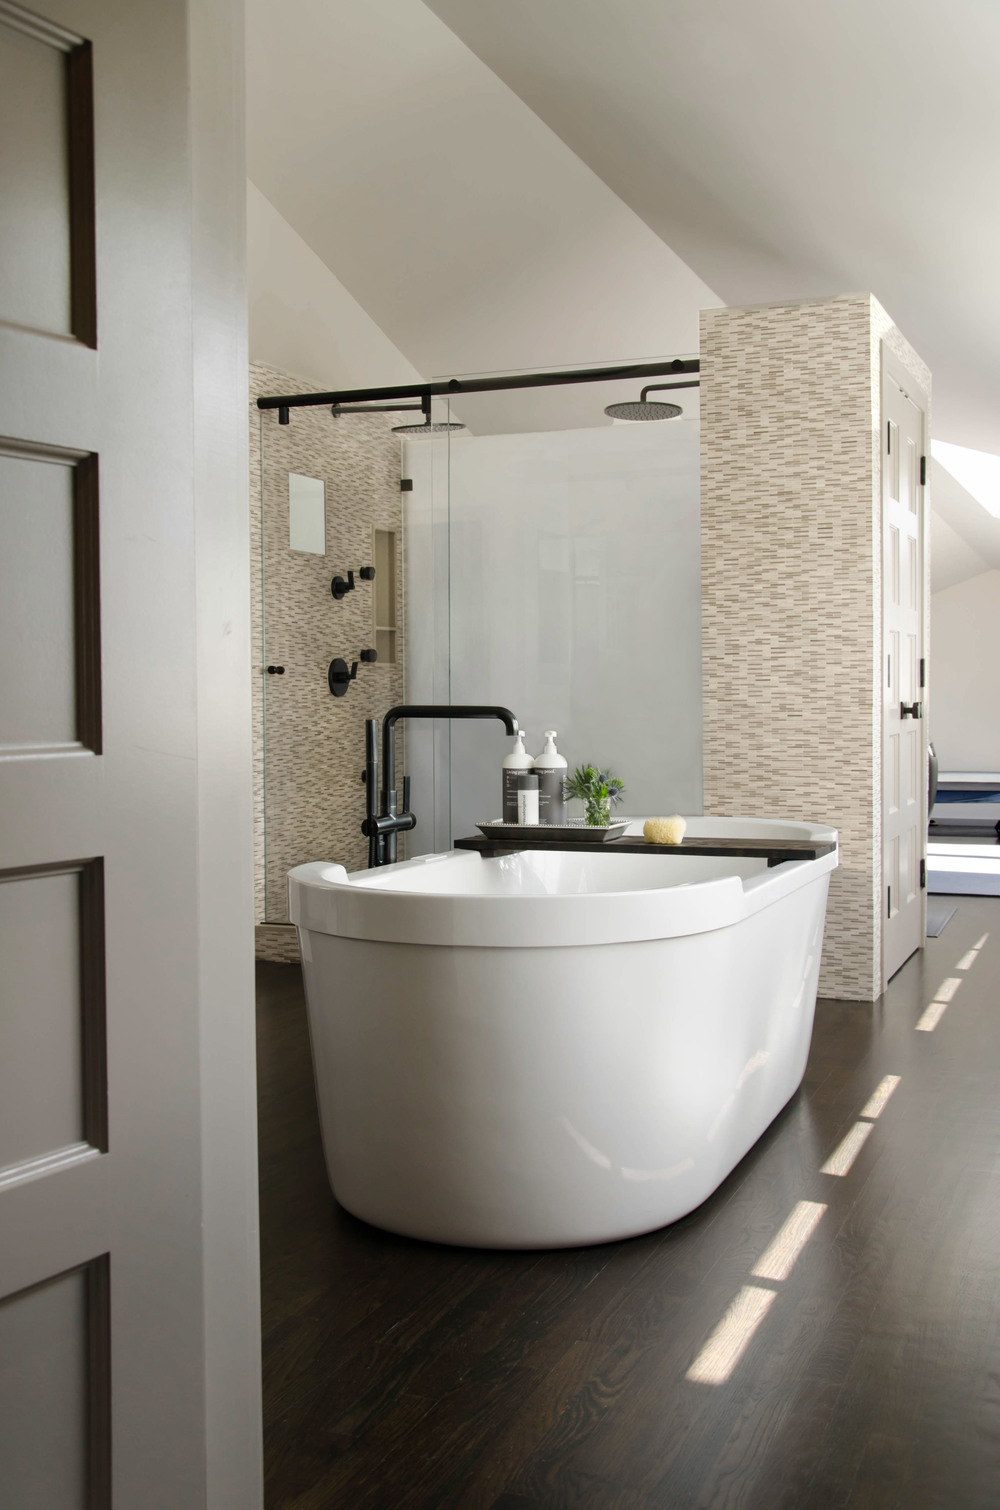 MasterBathroom-GrayscaleDesign.jpg